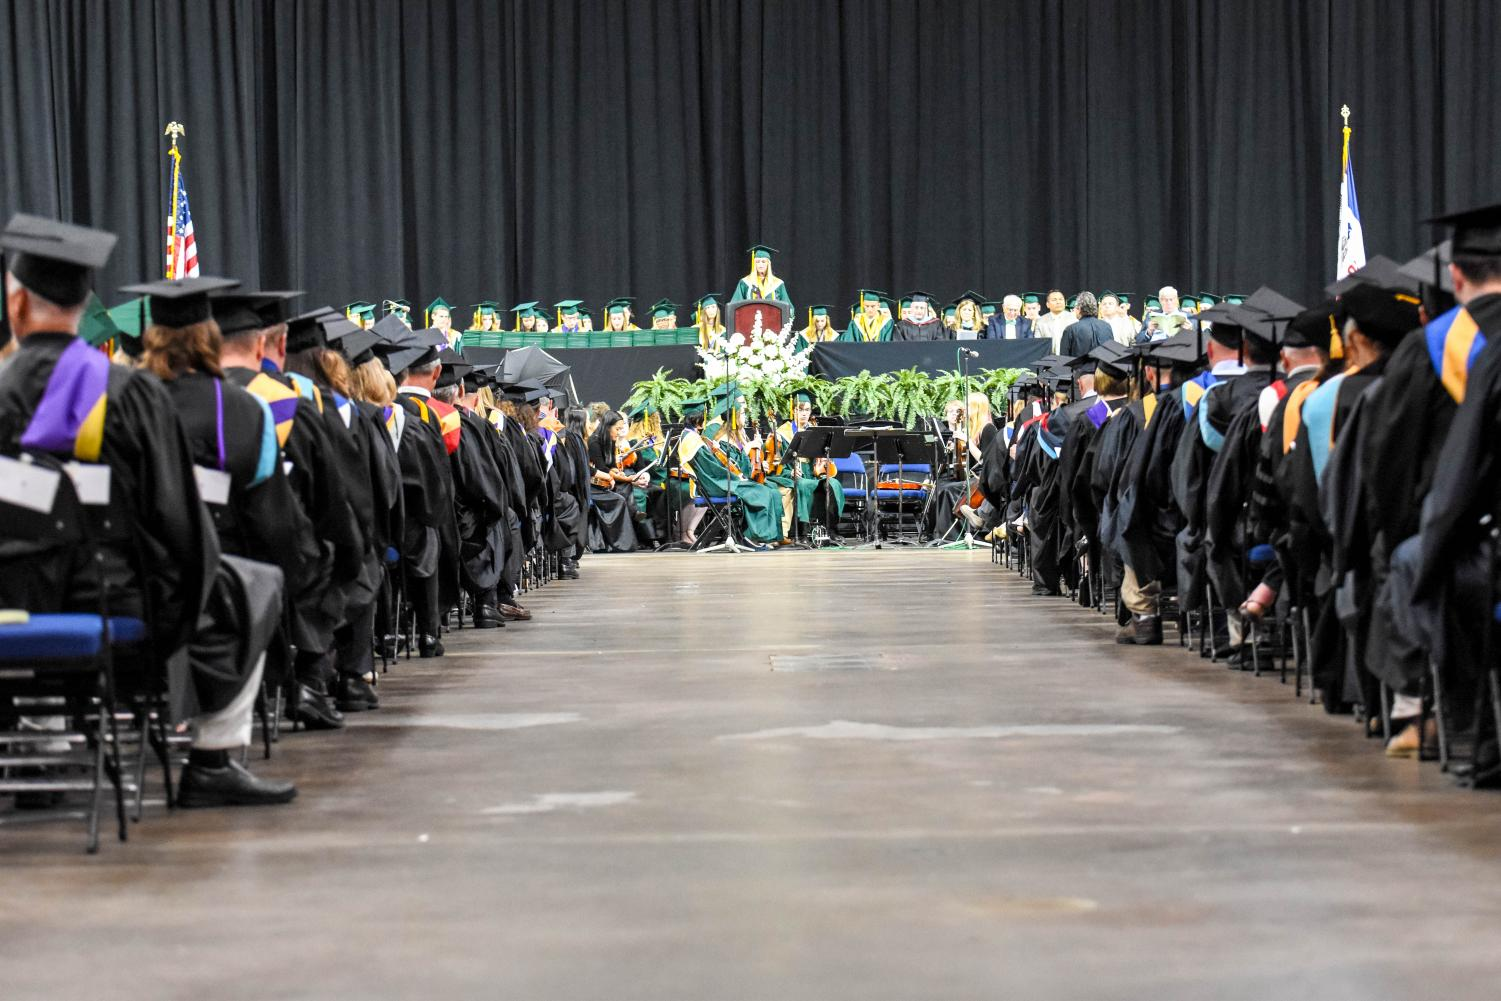 Kennedy High School Graduation Ceremony in 2017